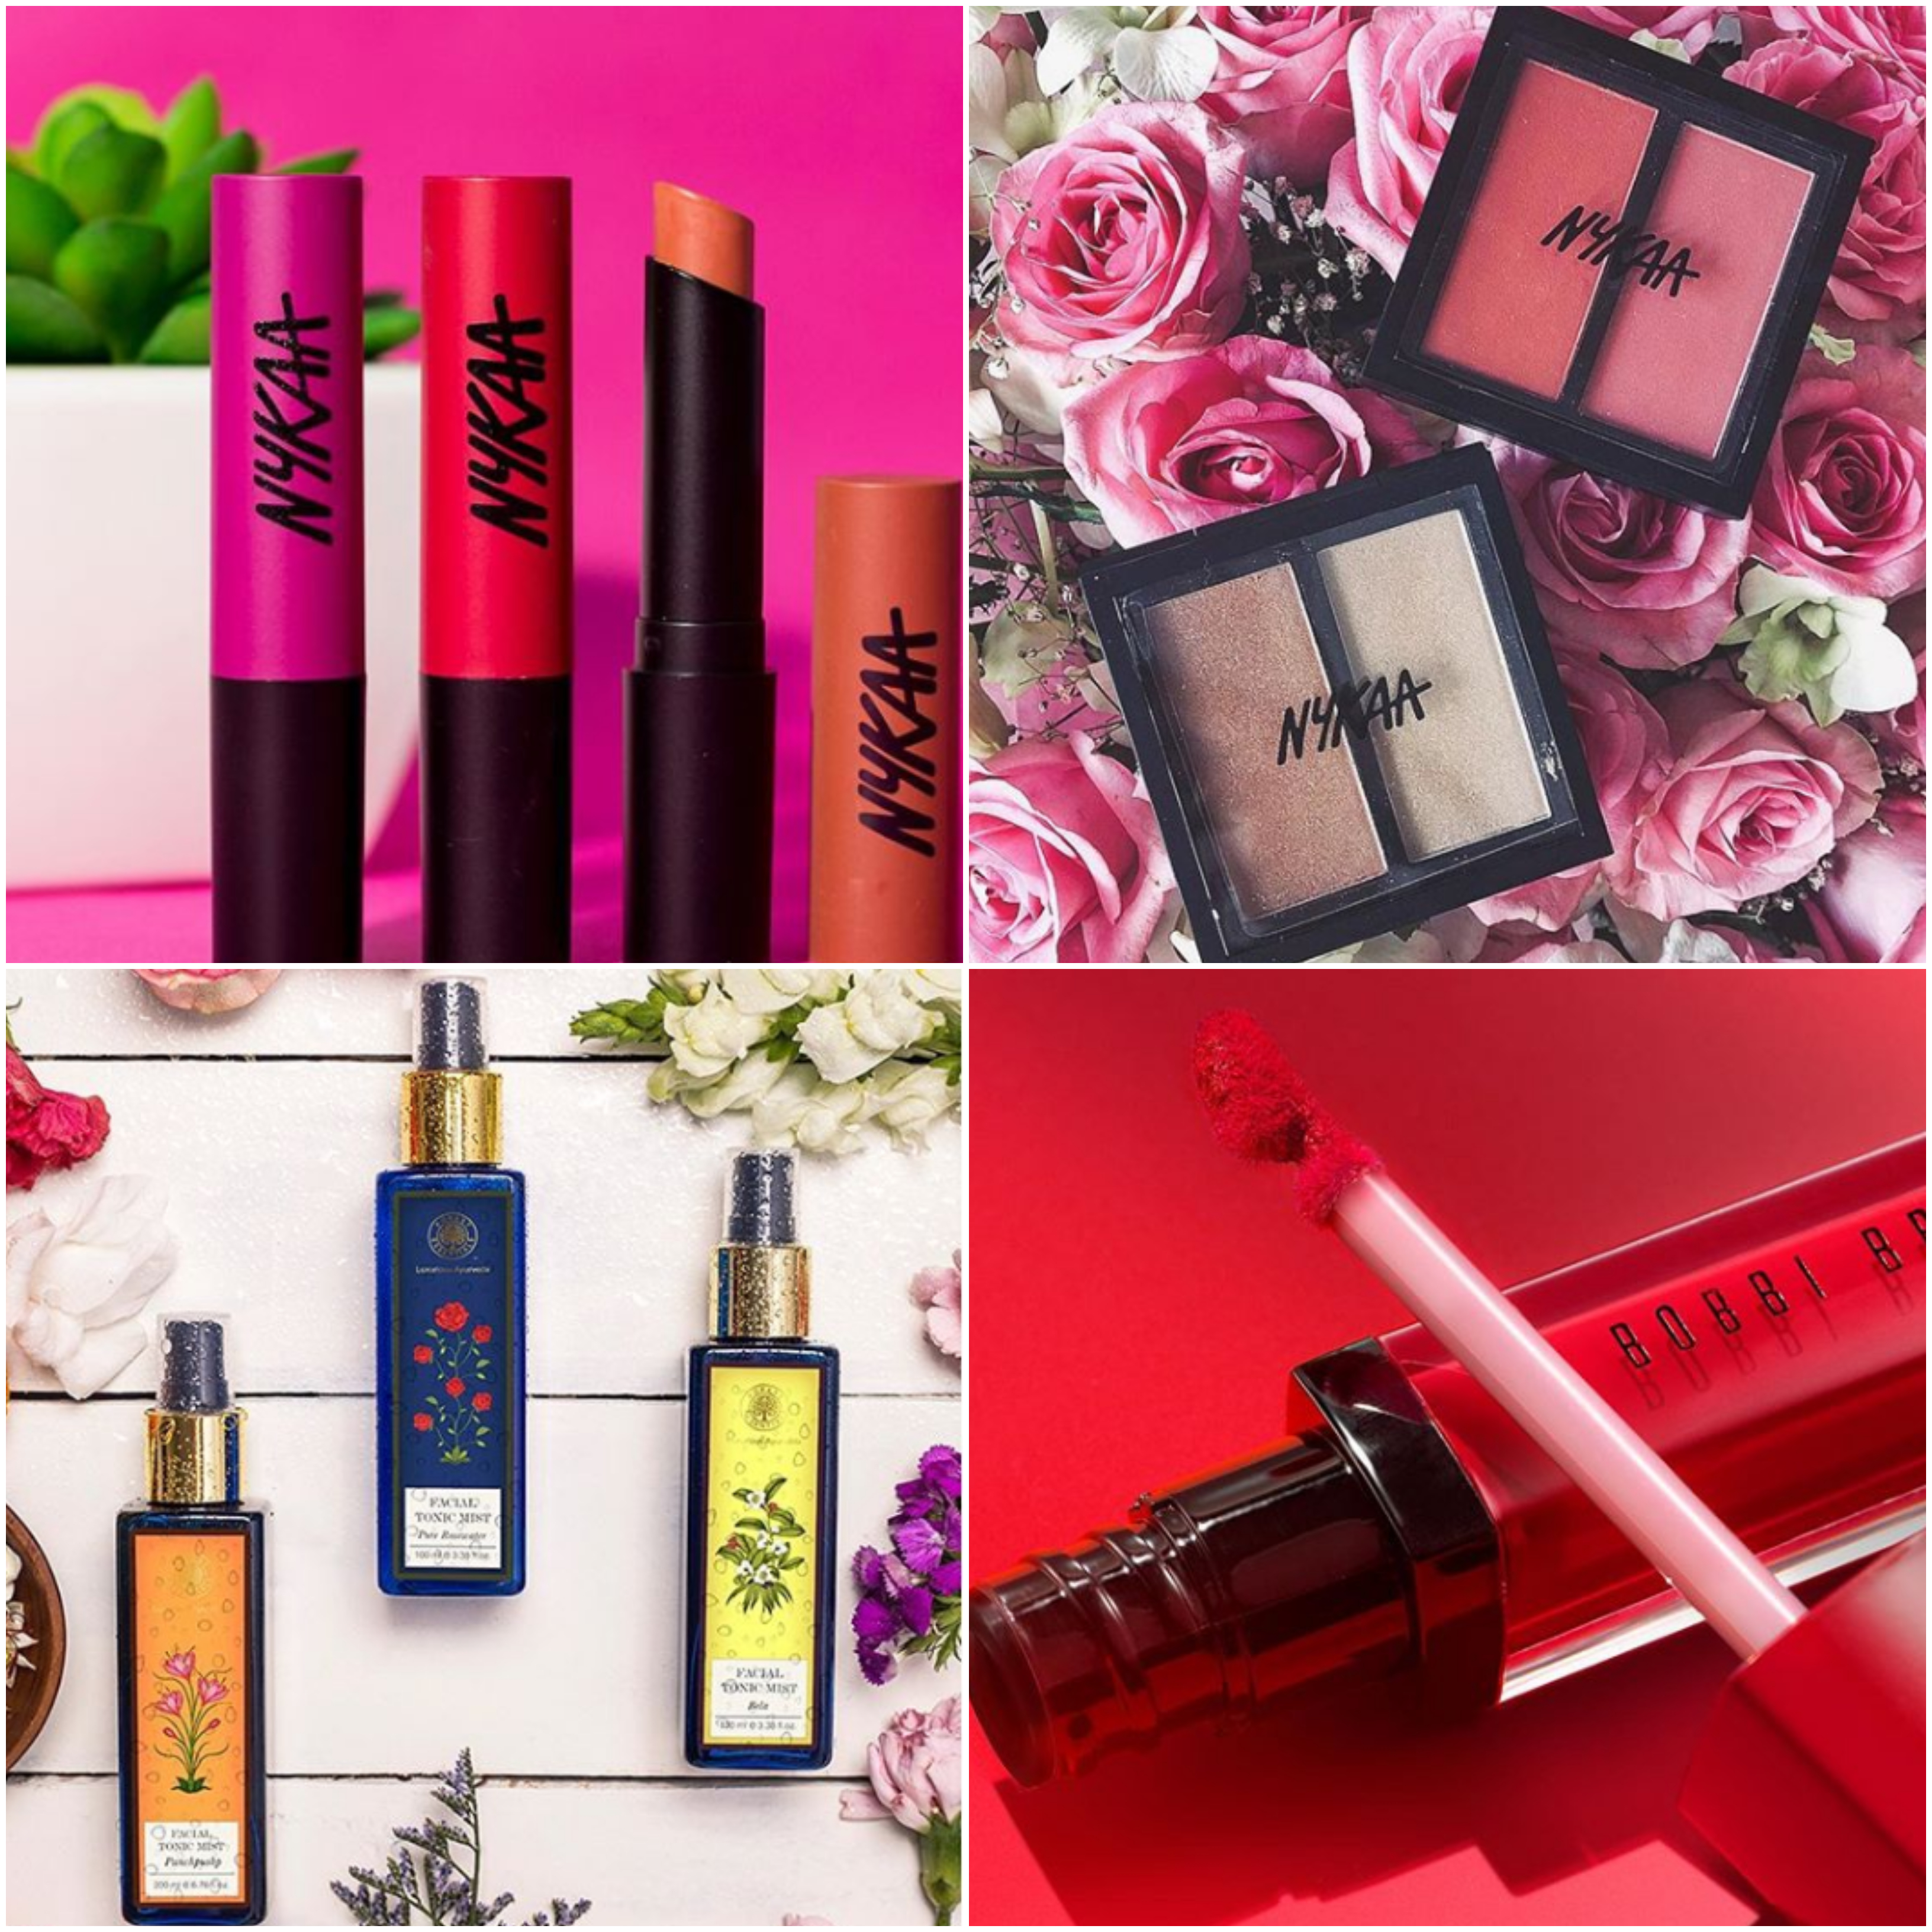 Ciceroni-beautystores-Ahmedabad-shoppingguide-lakme-AhmedabadOneMall-Victoria's Secret-Estee Lauder-Chambor-Nykaa- Iba Halal-Colorbar-Maybelline NewYork- L'Oréal Paris-Faces-Lotus-Biotique-The Perfume Shop-Bobbi Brown-Shoppers Stop-Westside-Lifestyle-Pantaloons-cosmeticstores-MYMY-beautyessentials-forestessentials-nykaa